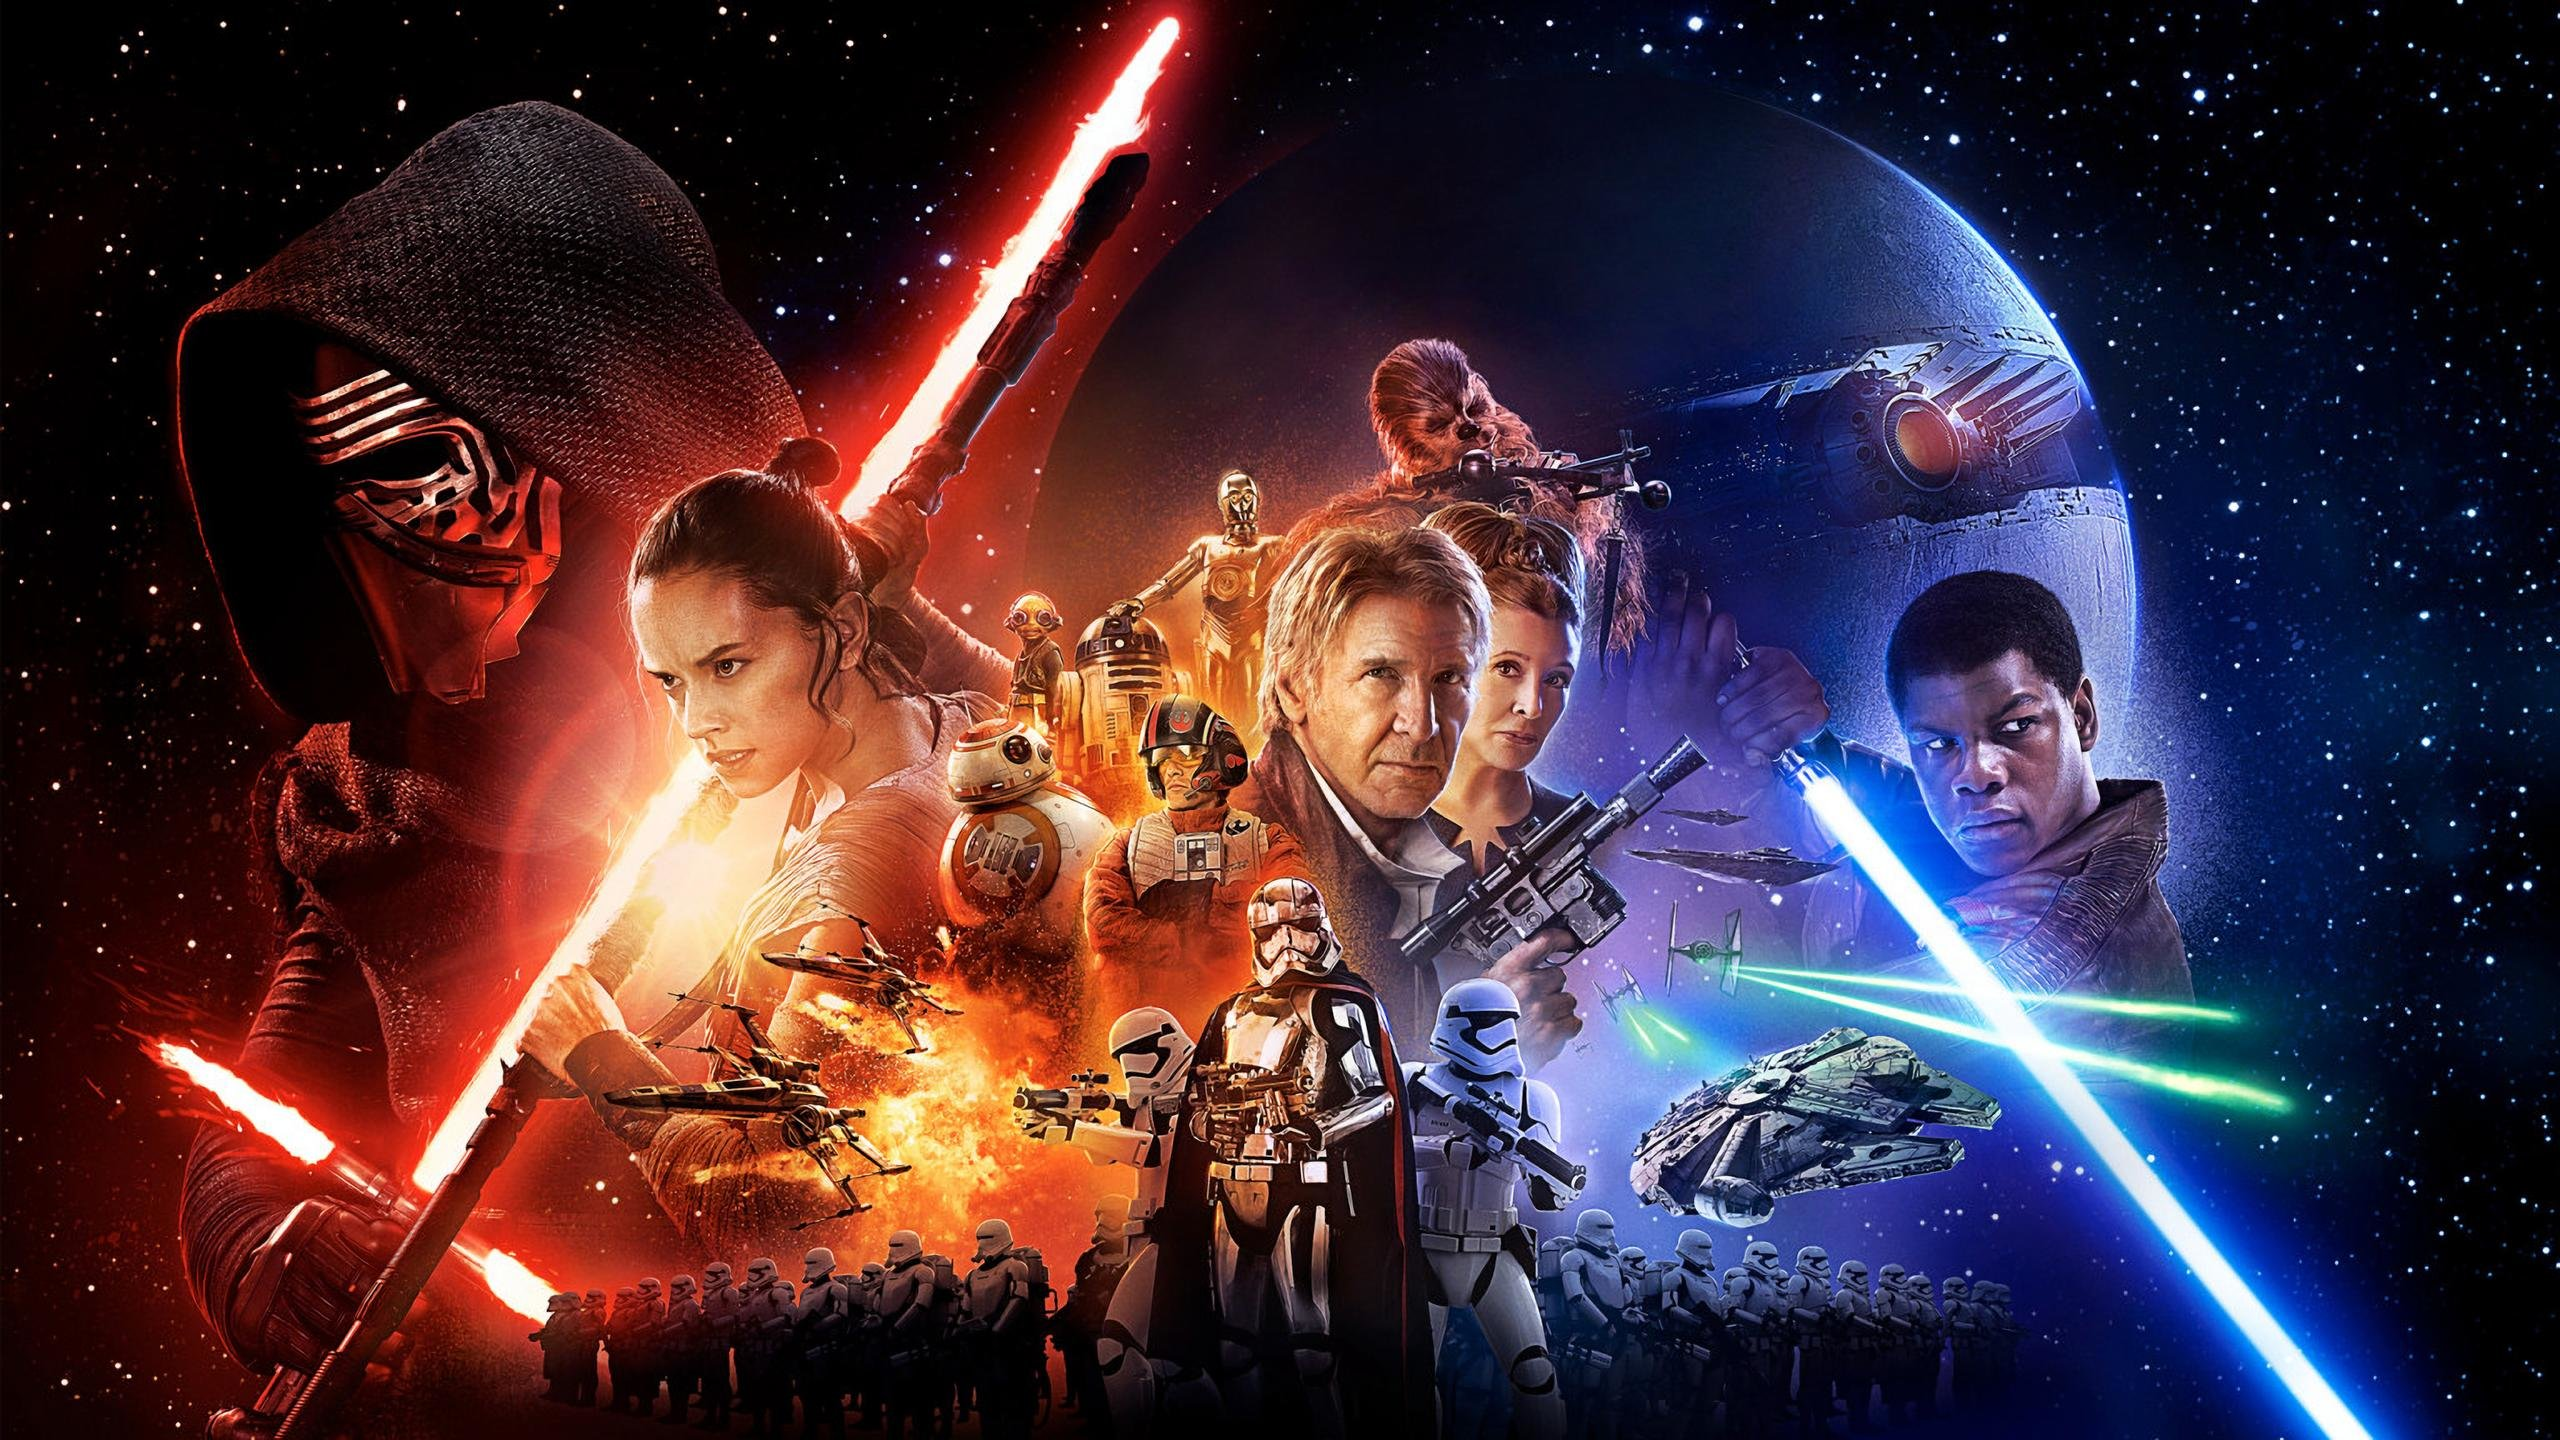 star wars episode 7 vii the force awakens background hd 2560x1440 282648